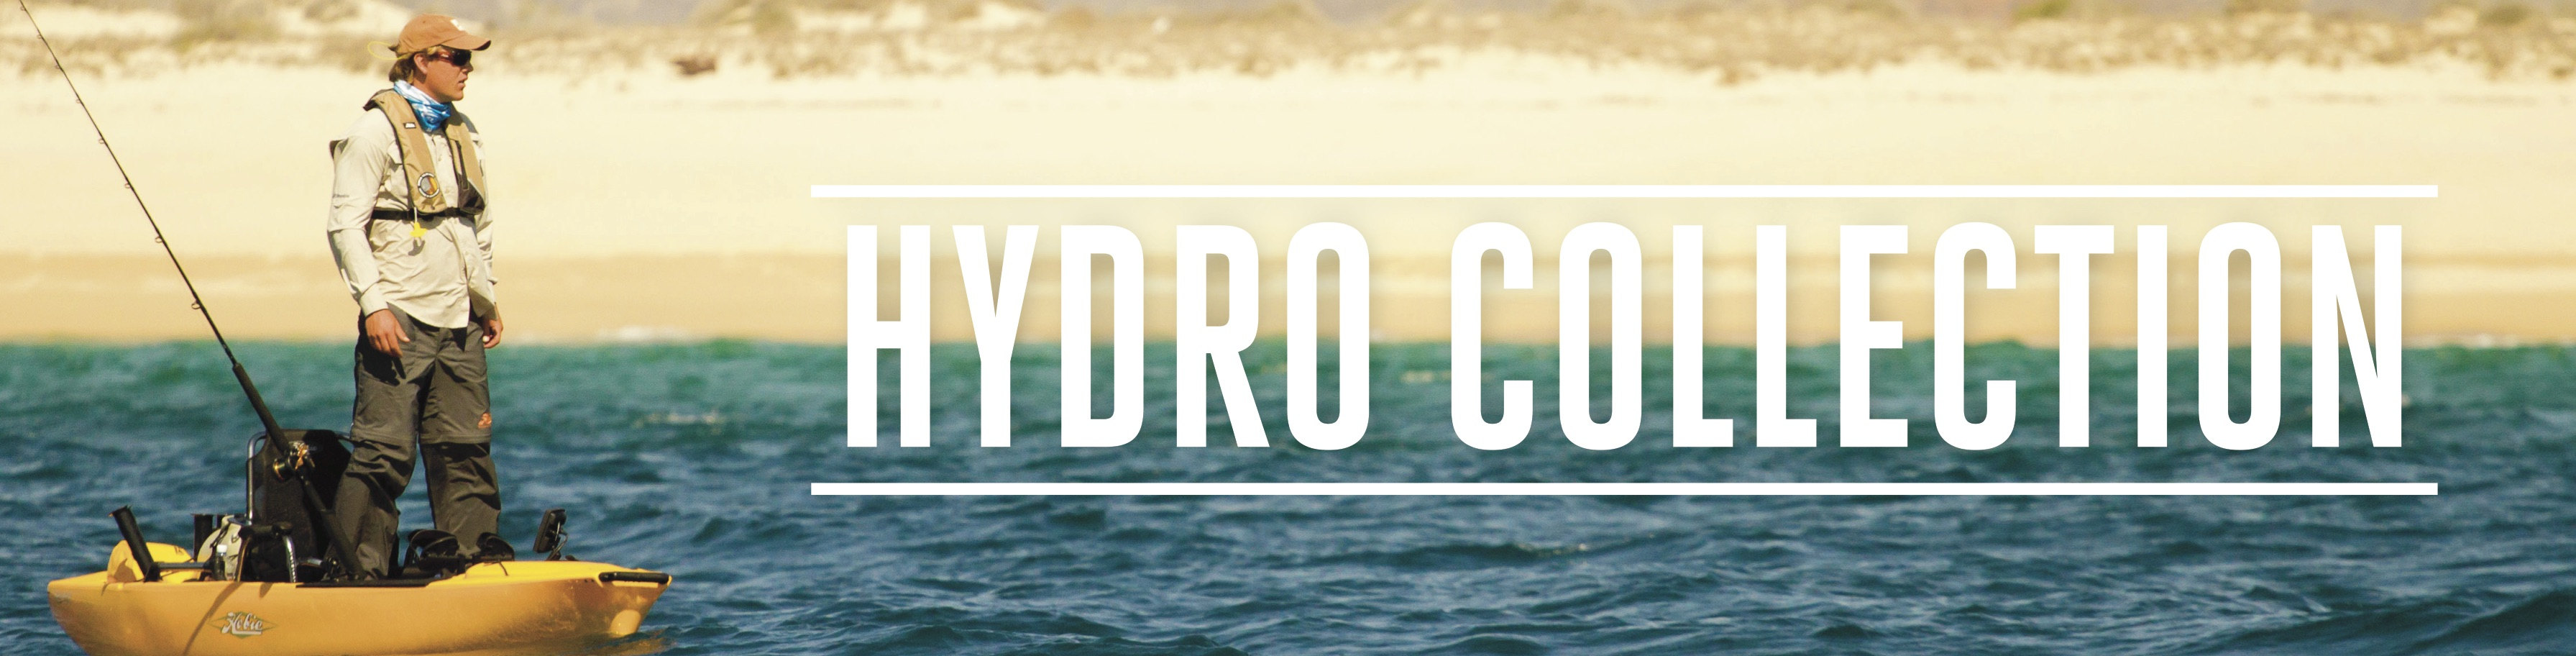 Hydro Collection